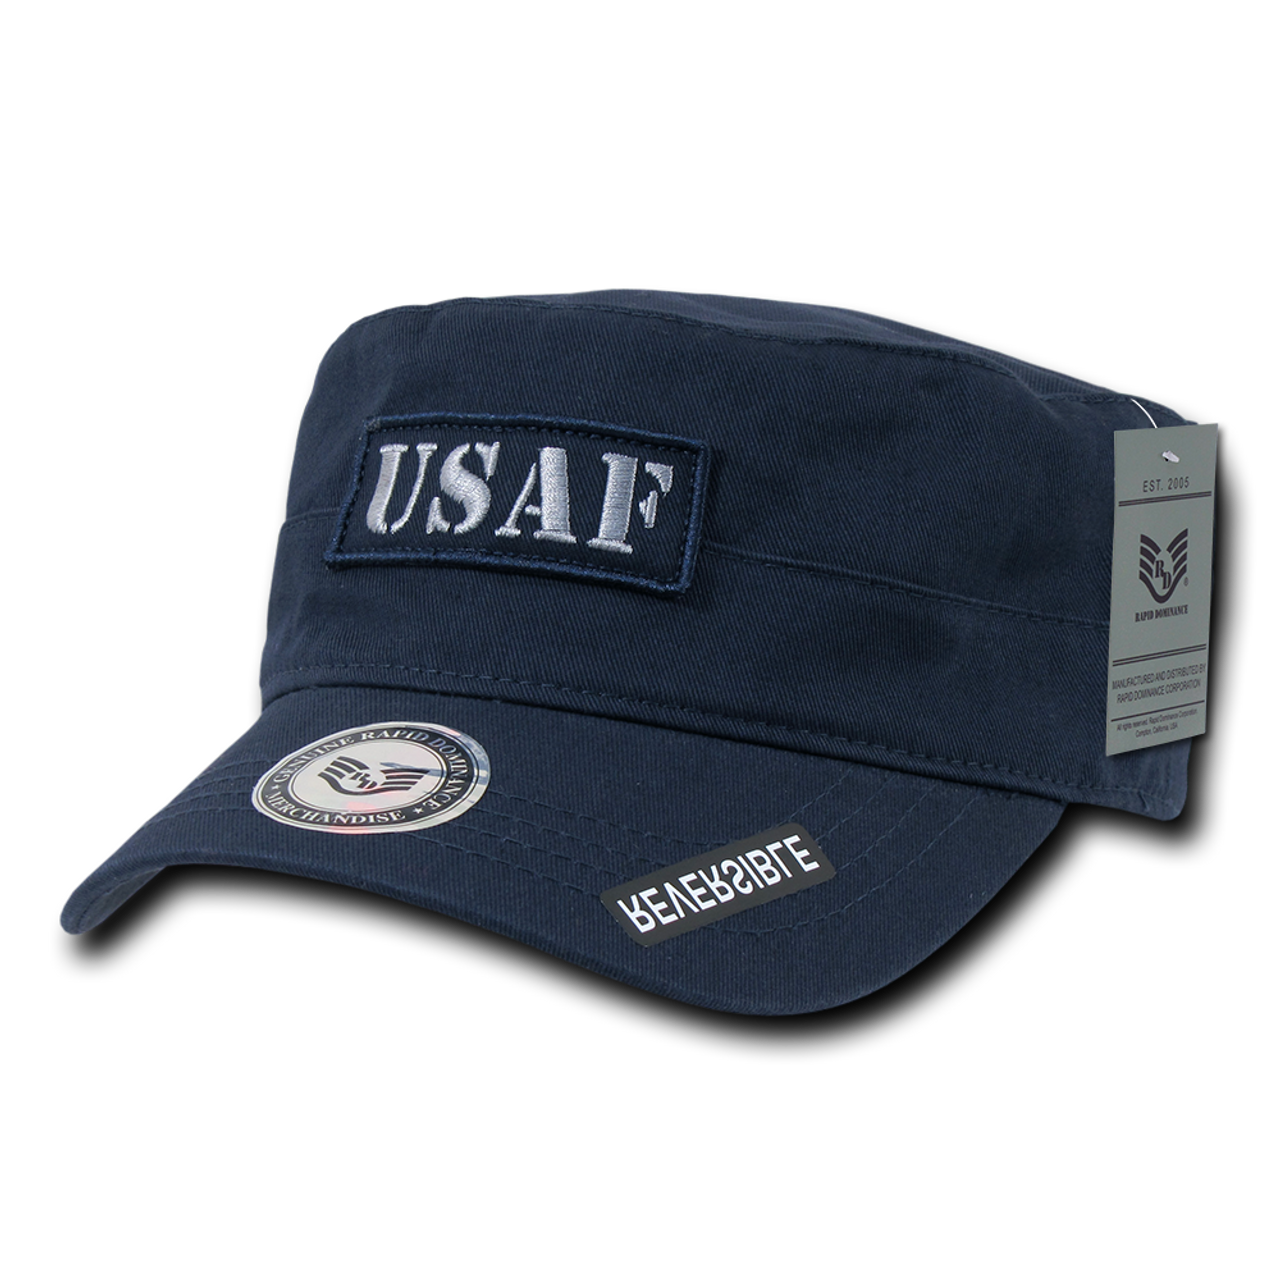 07e29fb6d81 ... S88 - Air Force Cap - USAF - Vintage Military Style - Reversible - Logo  ...